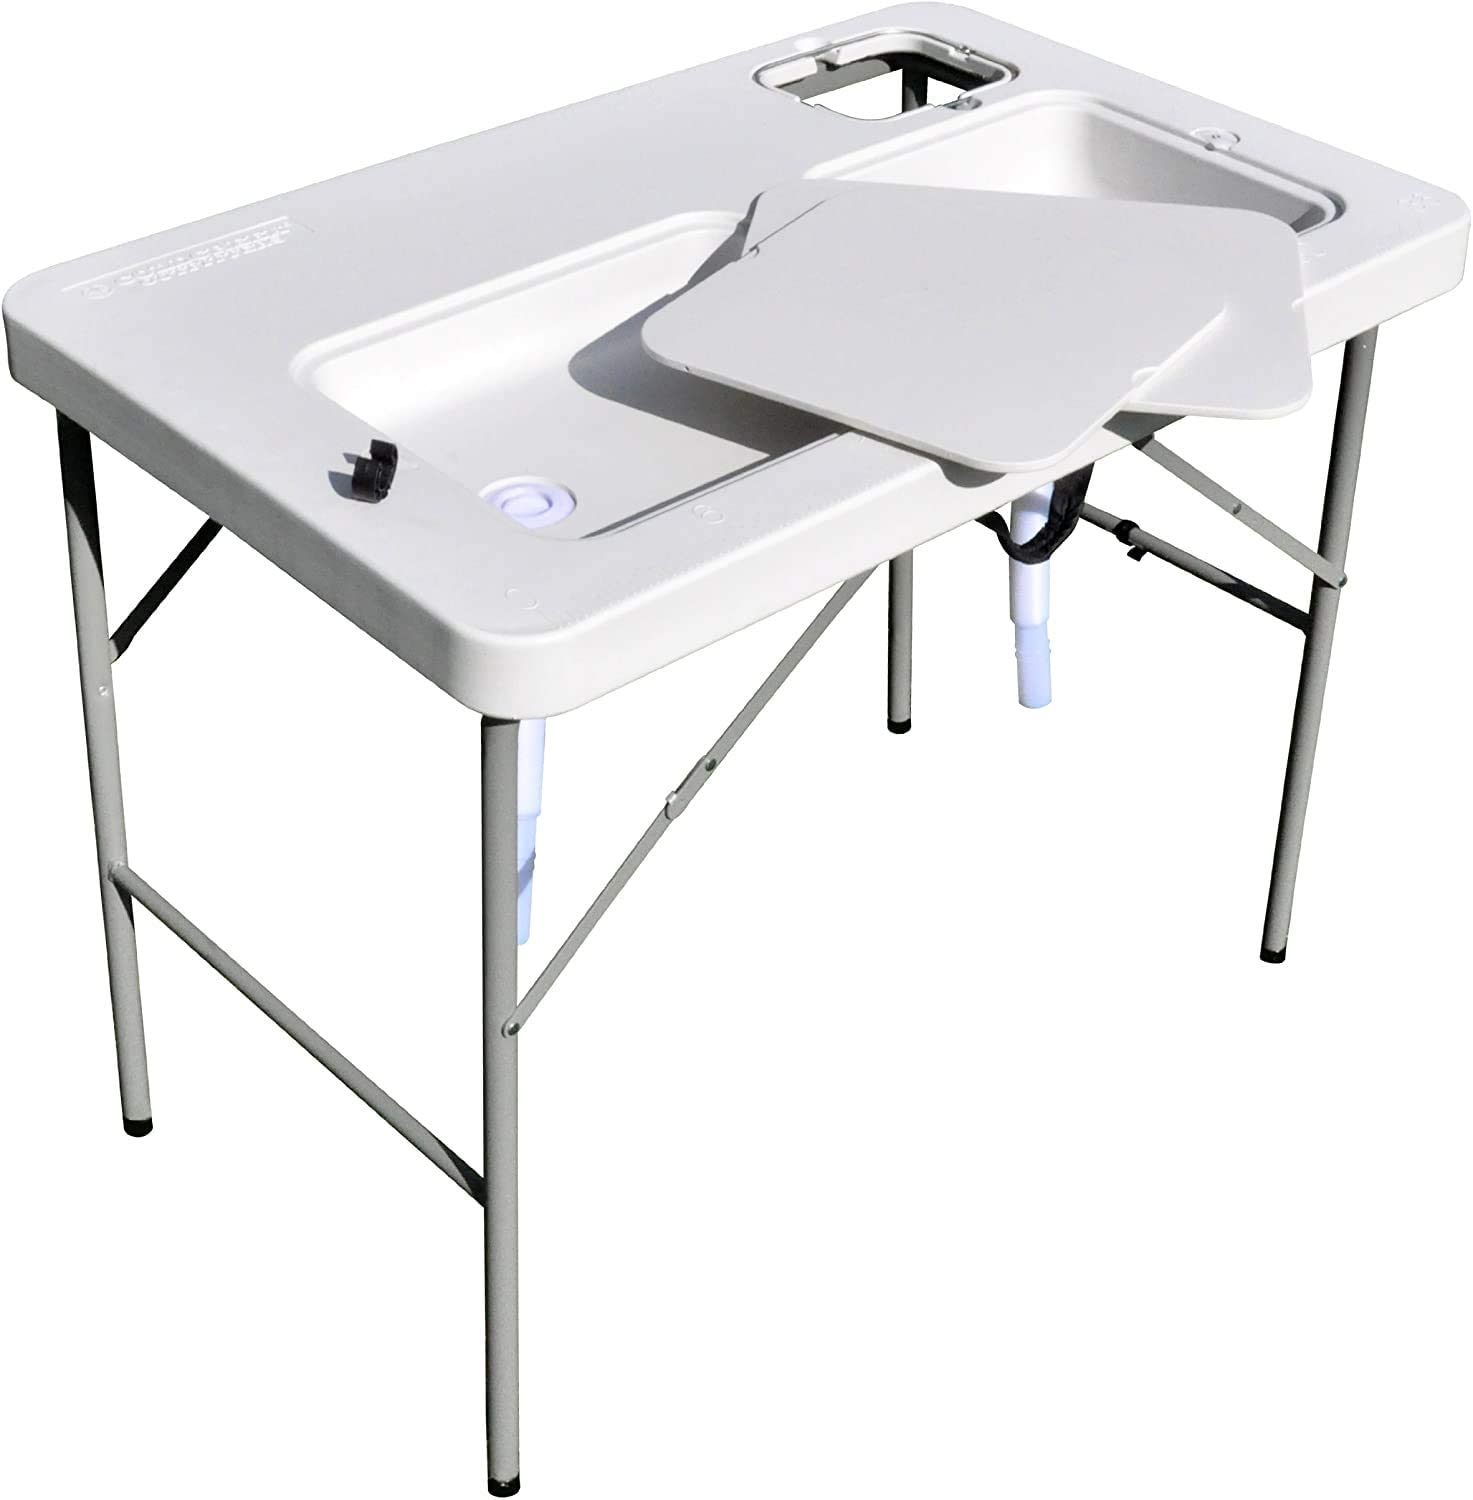 Best Fish Cleaning Tables 2021 Reviews 3